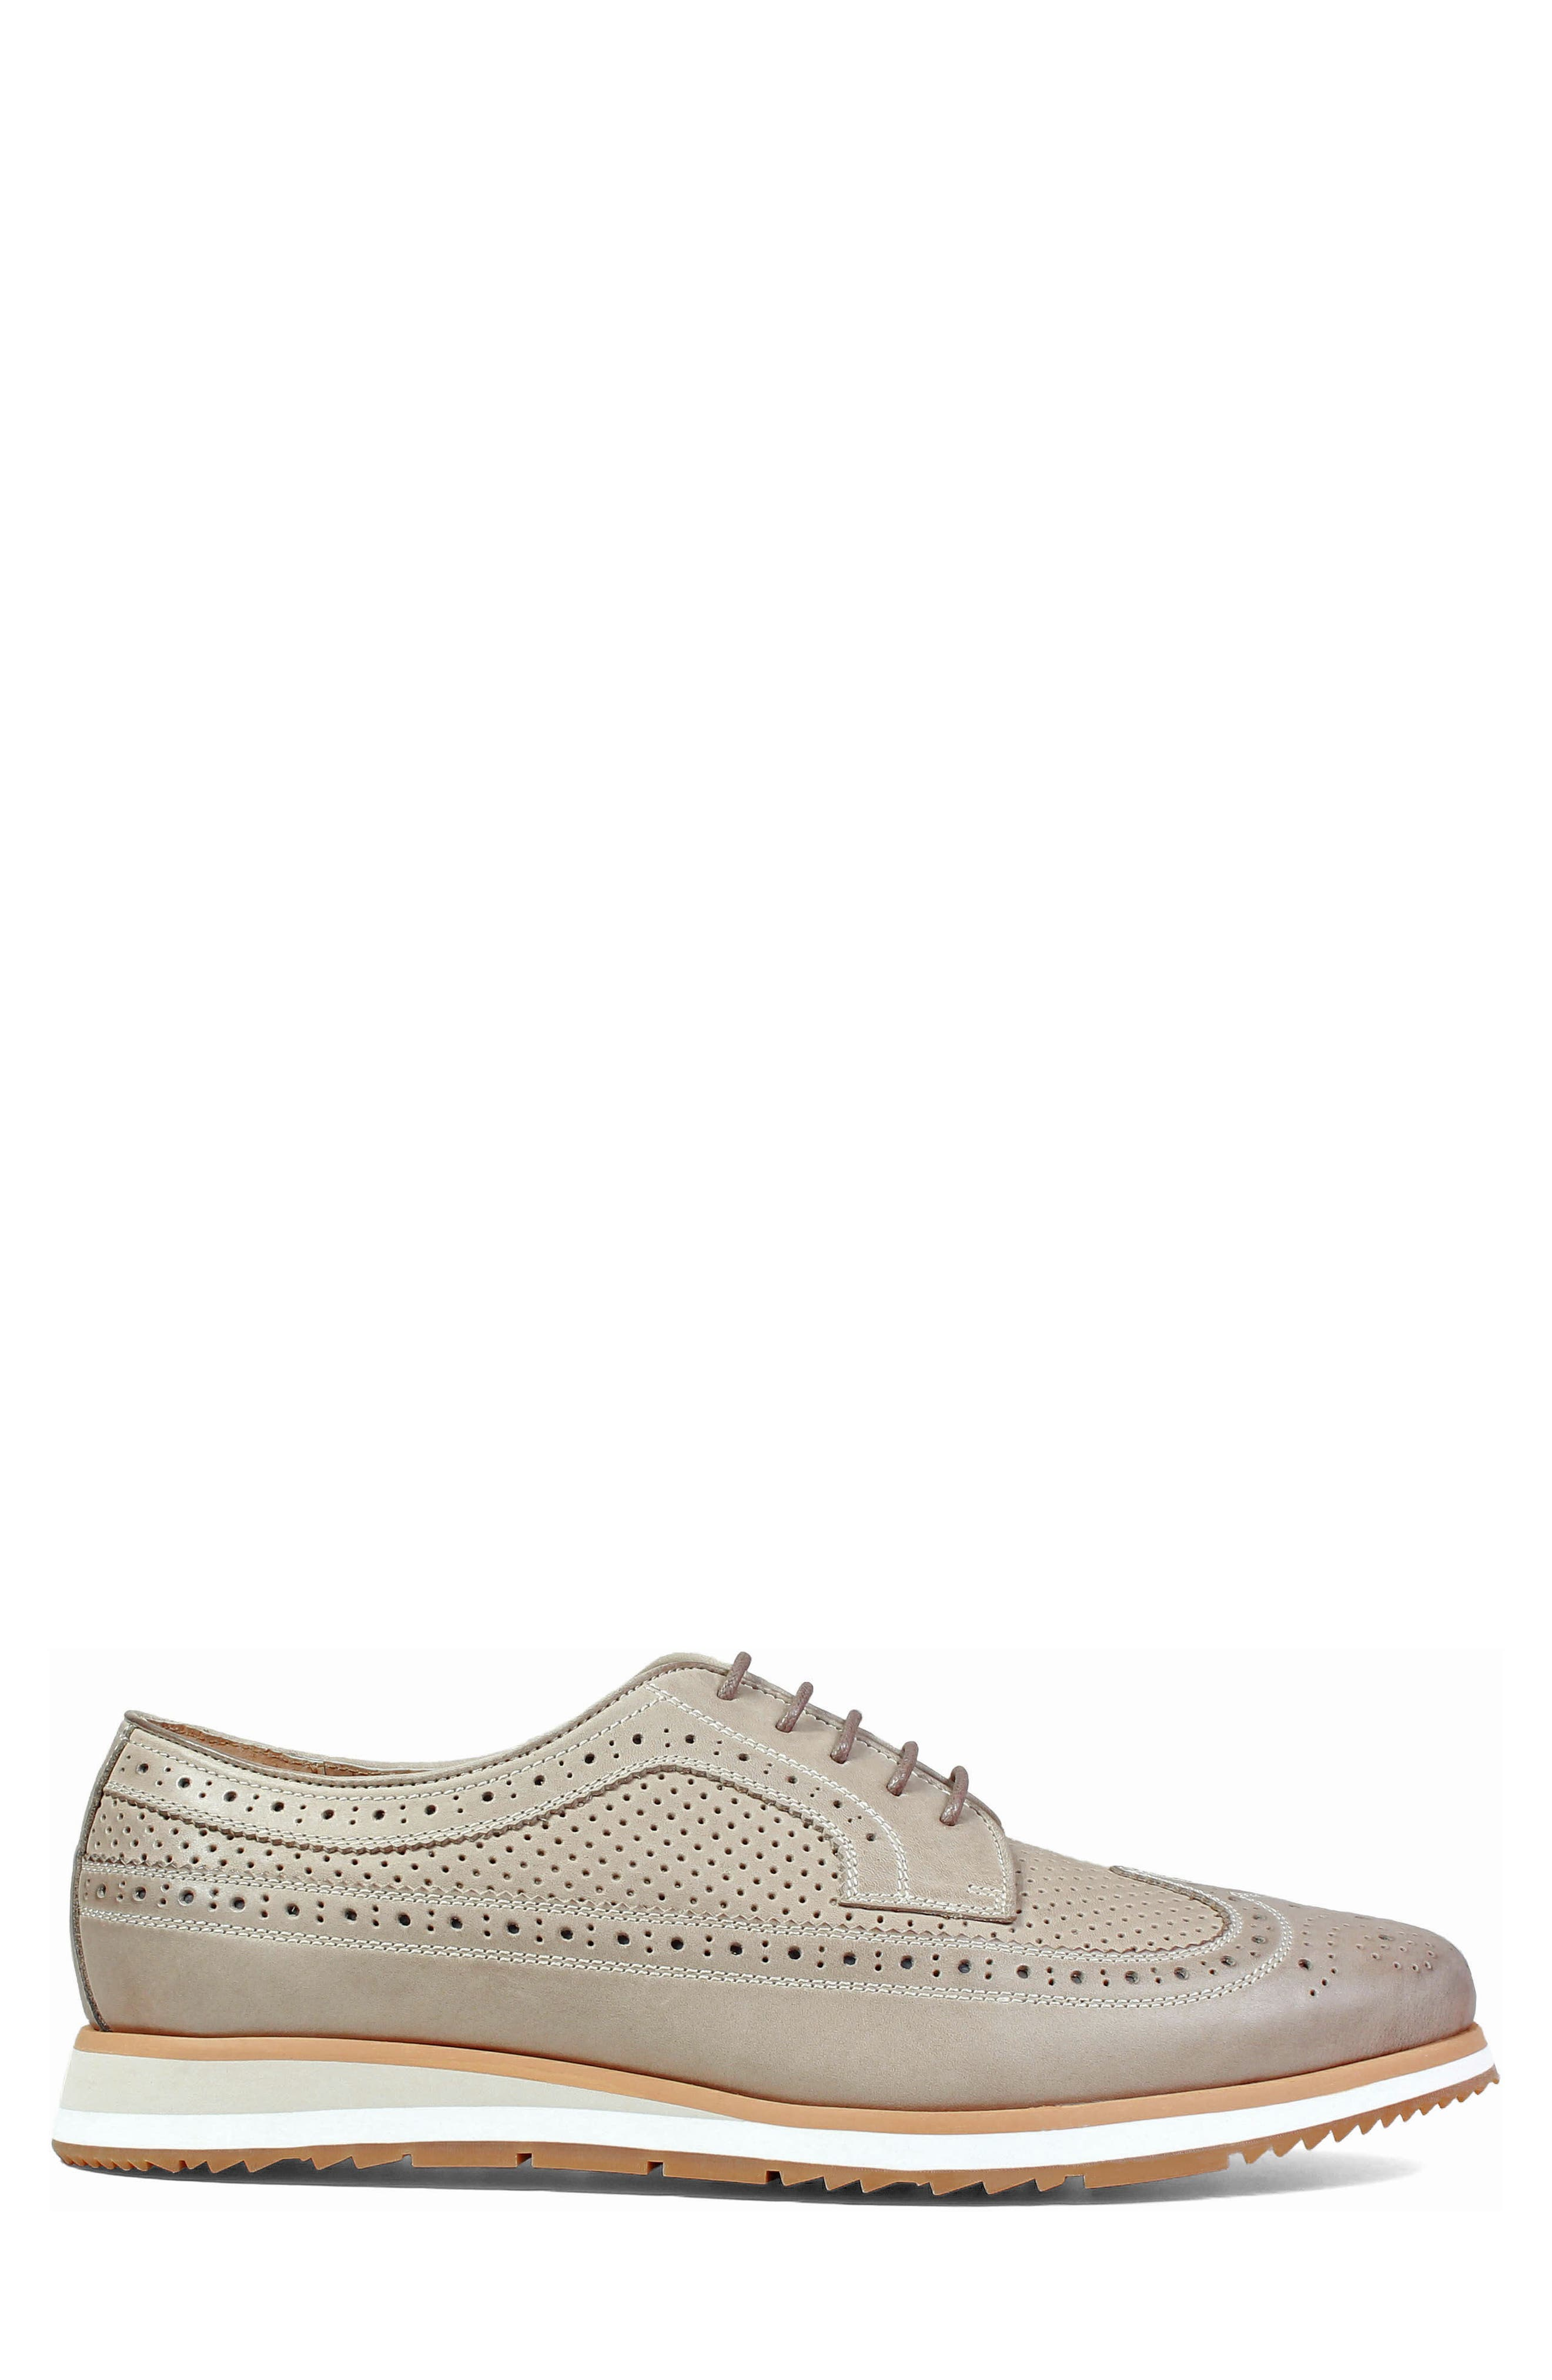 Limited Flux Perforated Wingtip Derby,                             Alternate thumbnail 8, color,